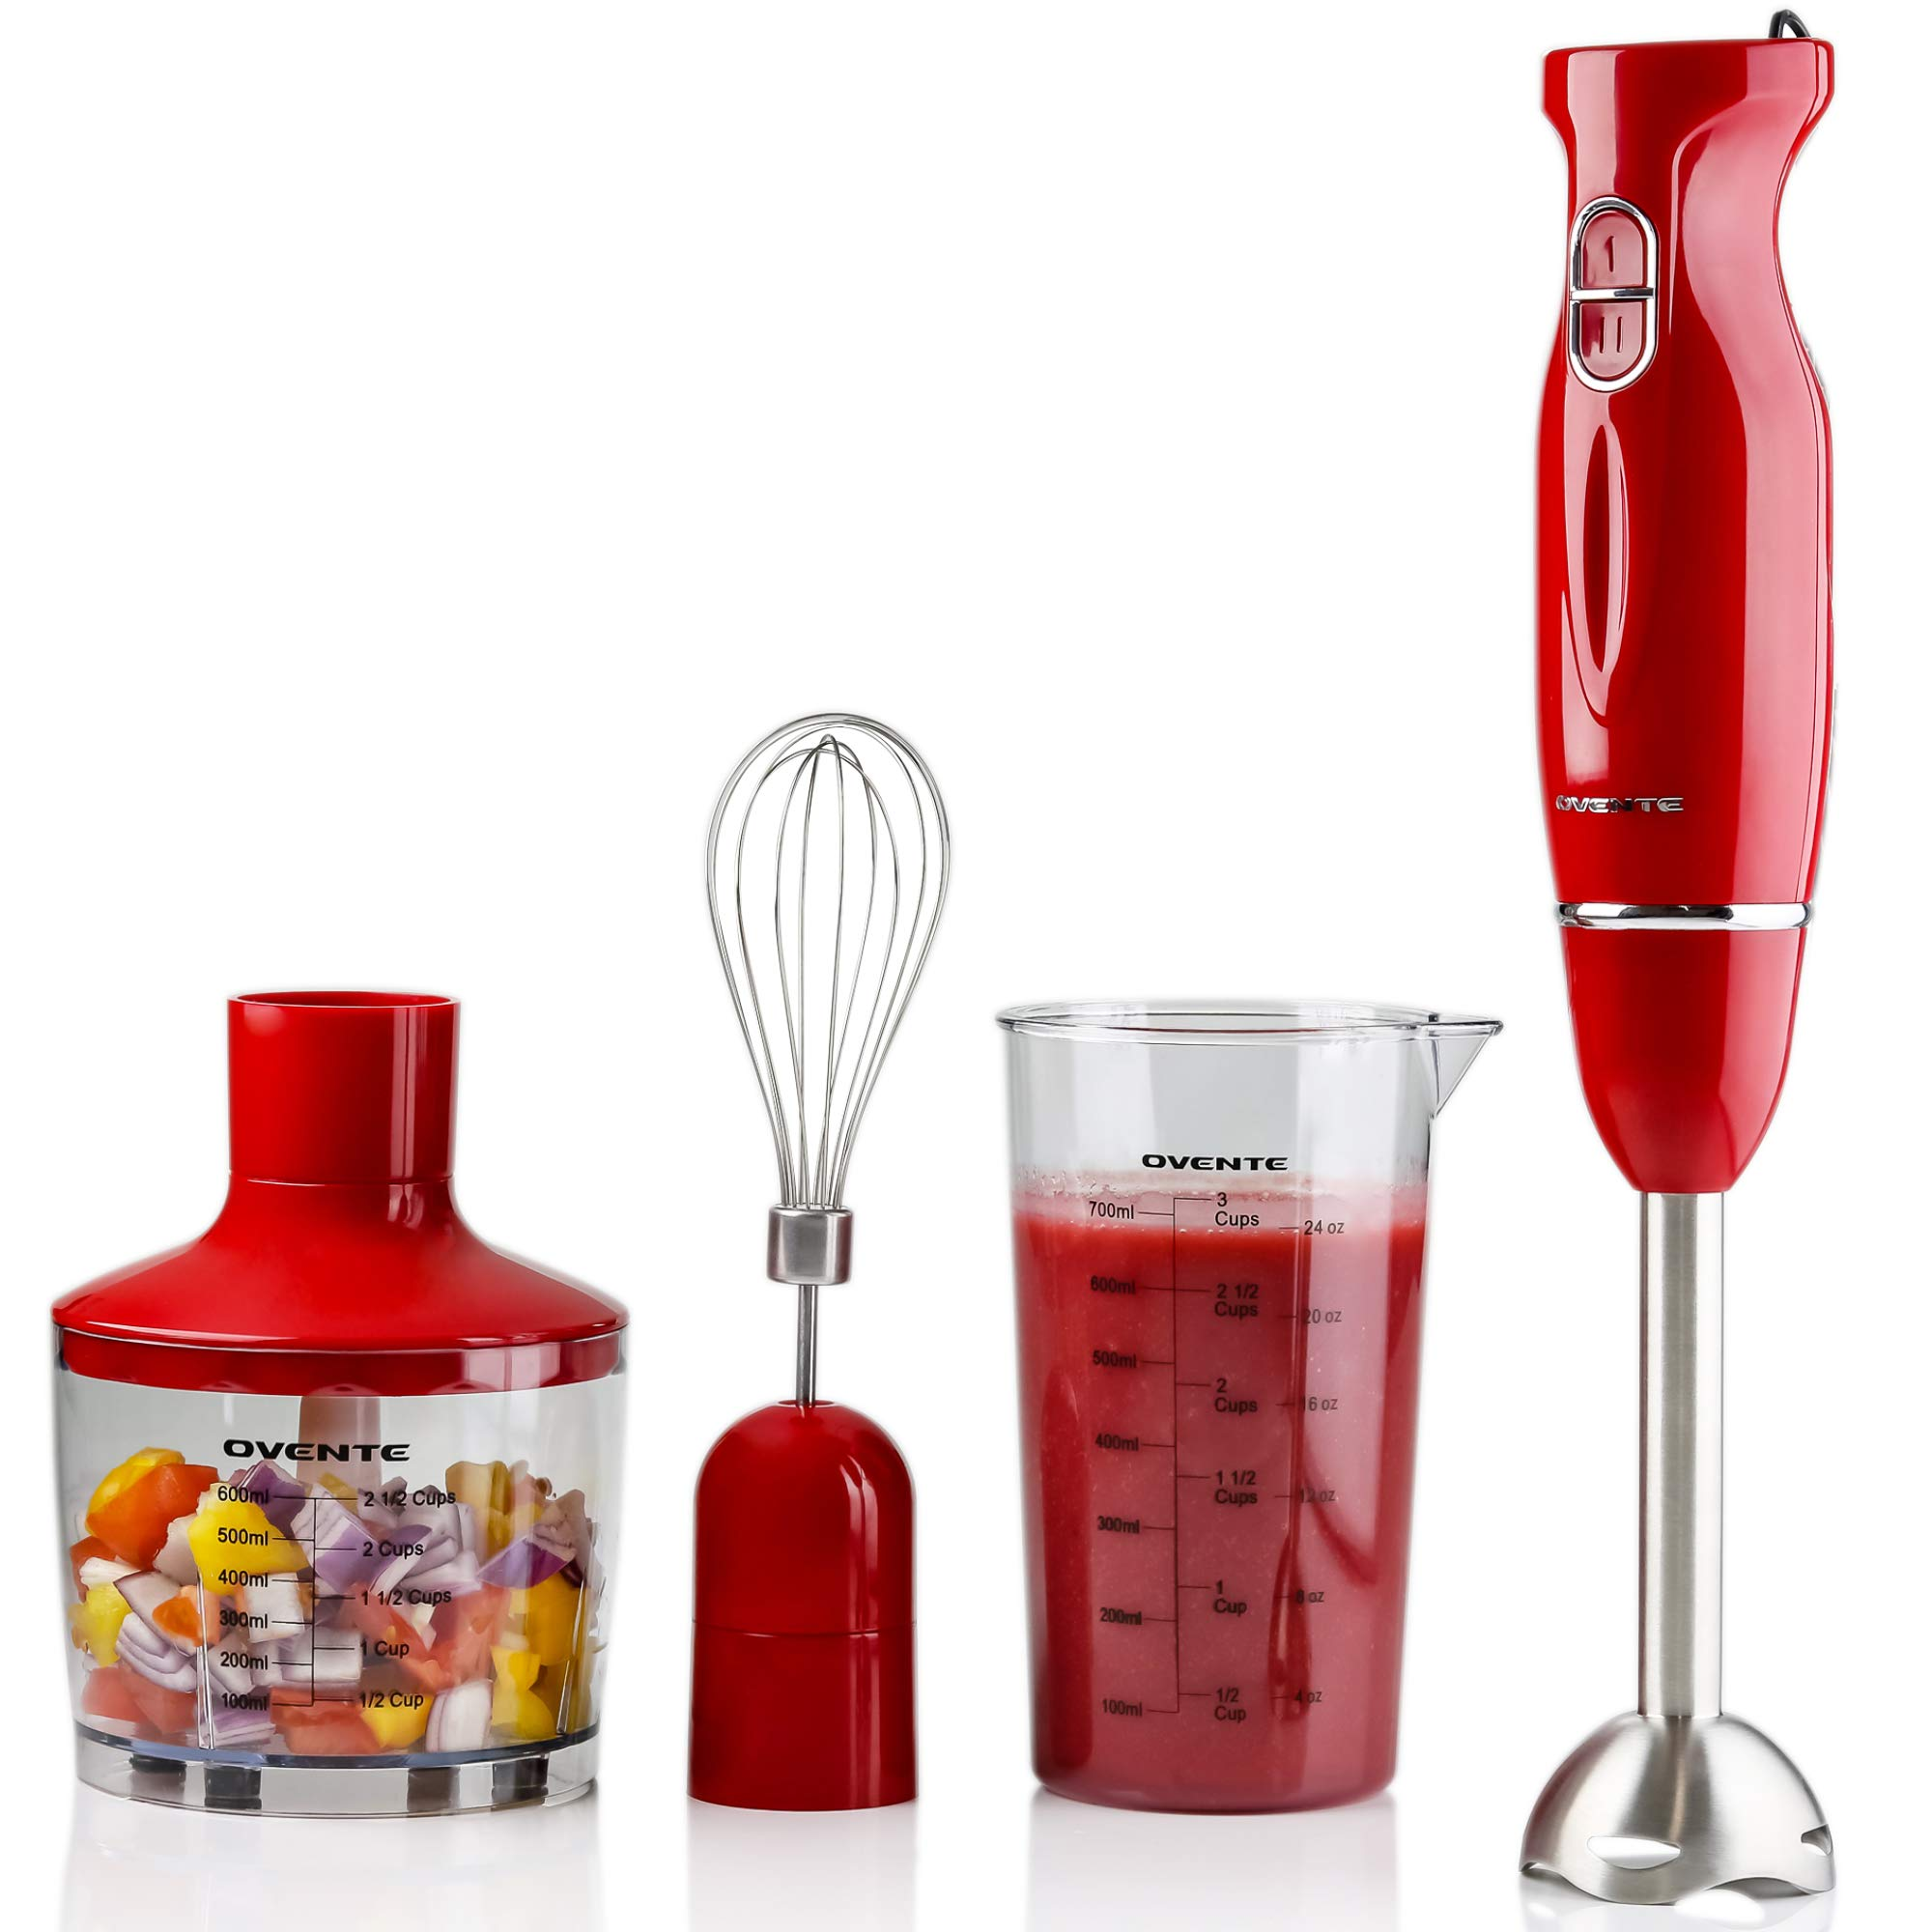 OVENTE HS565R Multi-Purpose Hand Immersion (Set-Red), Blender+Whisk+Beaker+Chopper